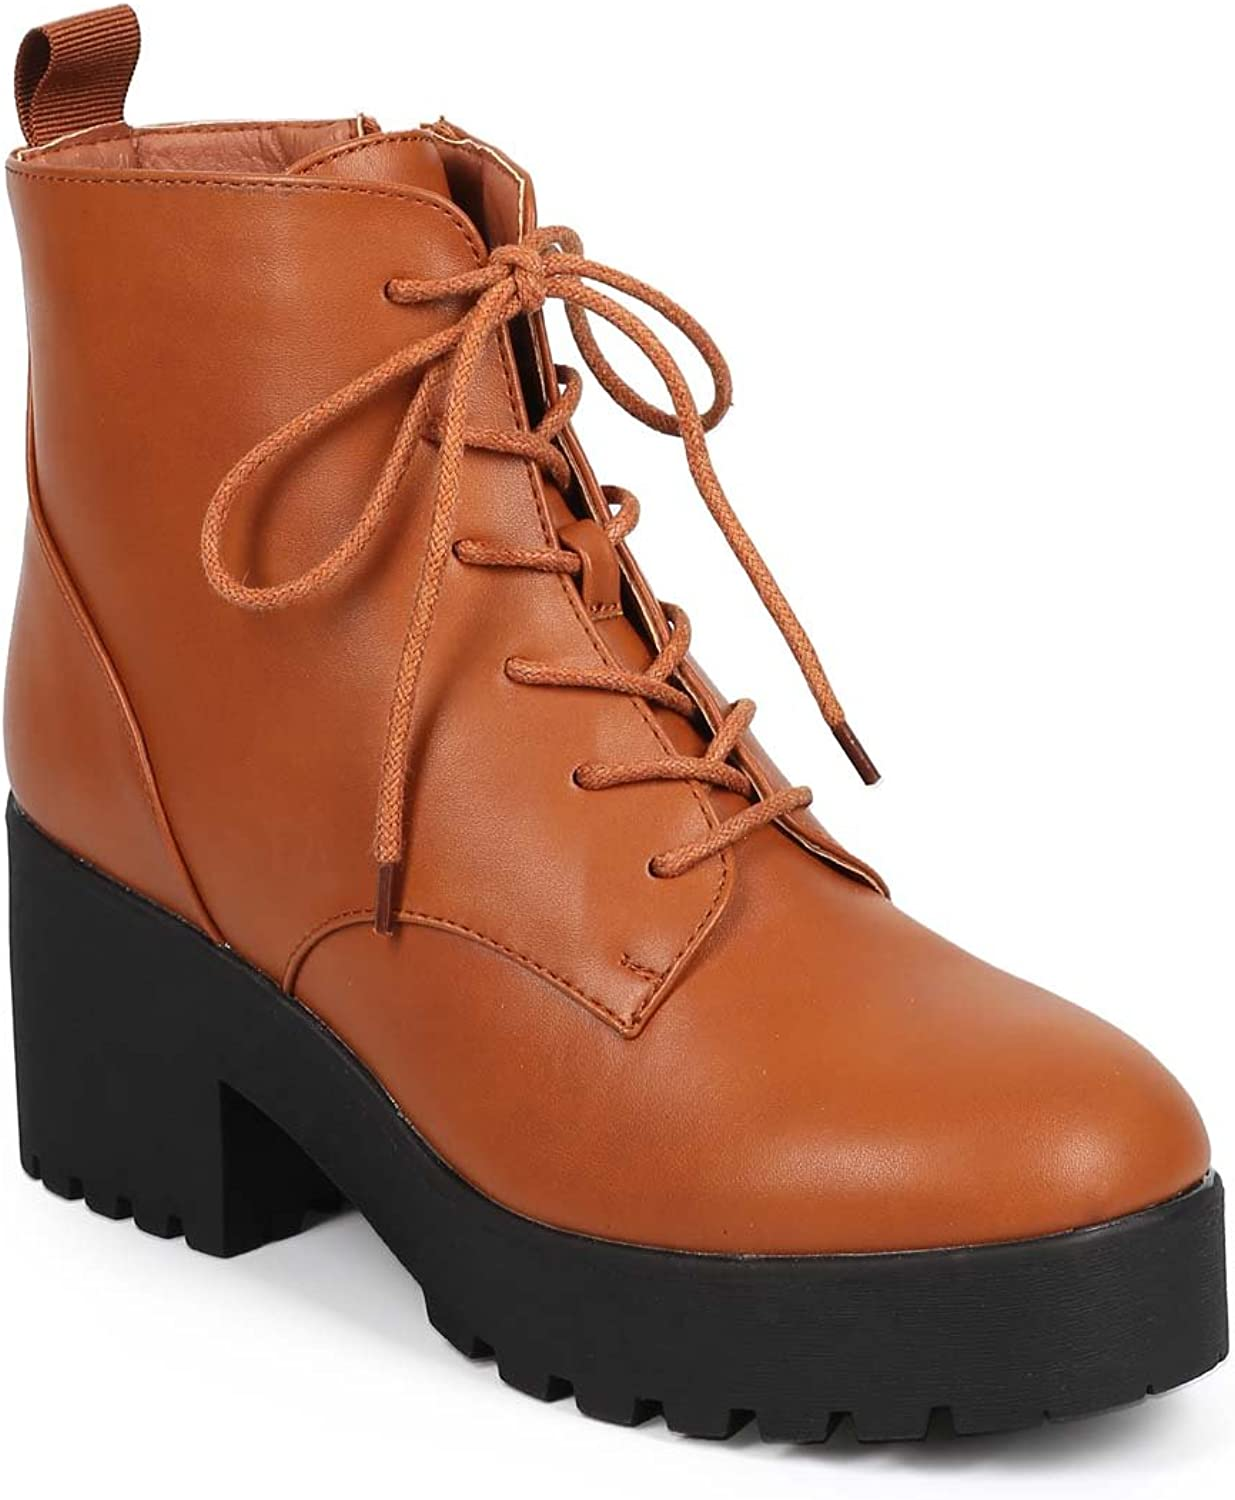 Wild Diva DB28 Women Leatherette Lug Sole Chunky Heel Lace Up Combat Boot - Whiskey